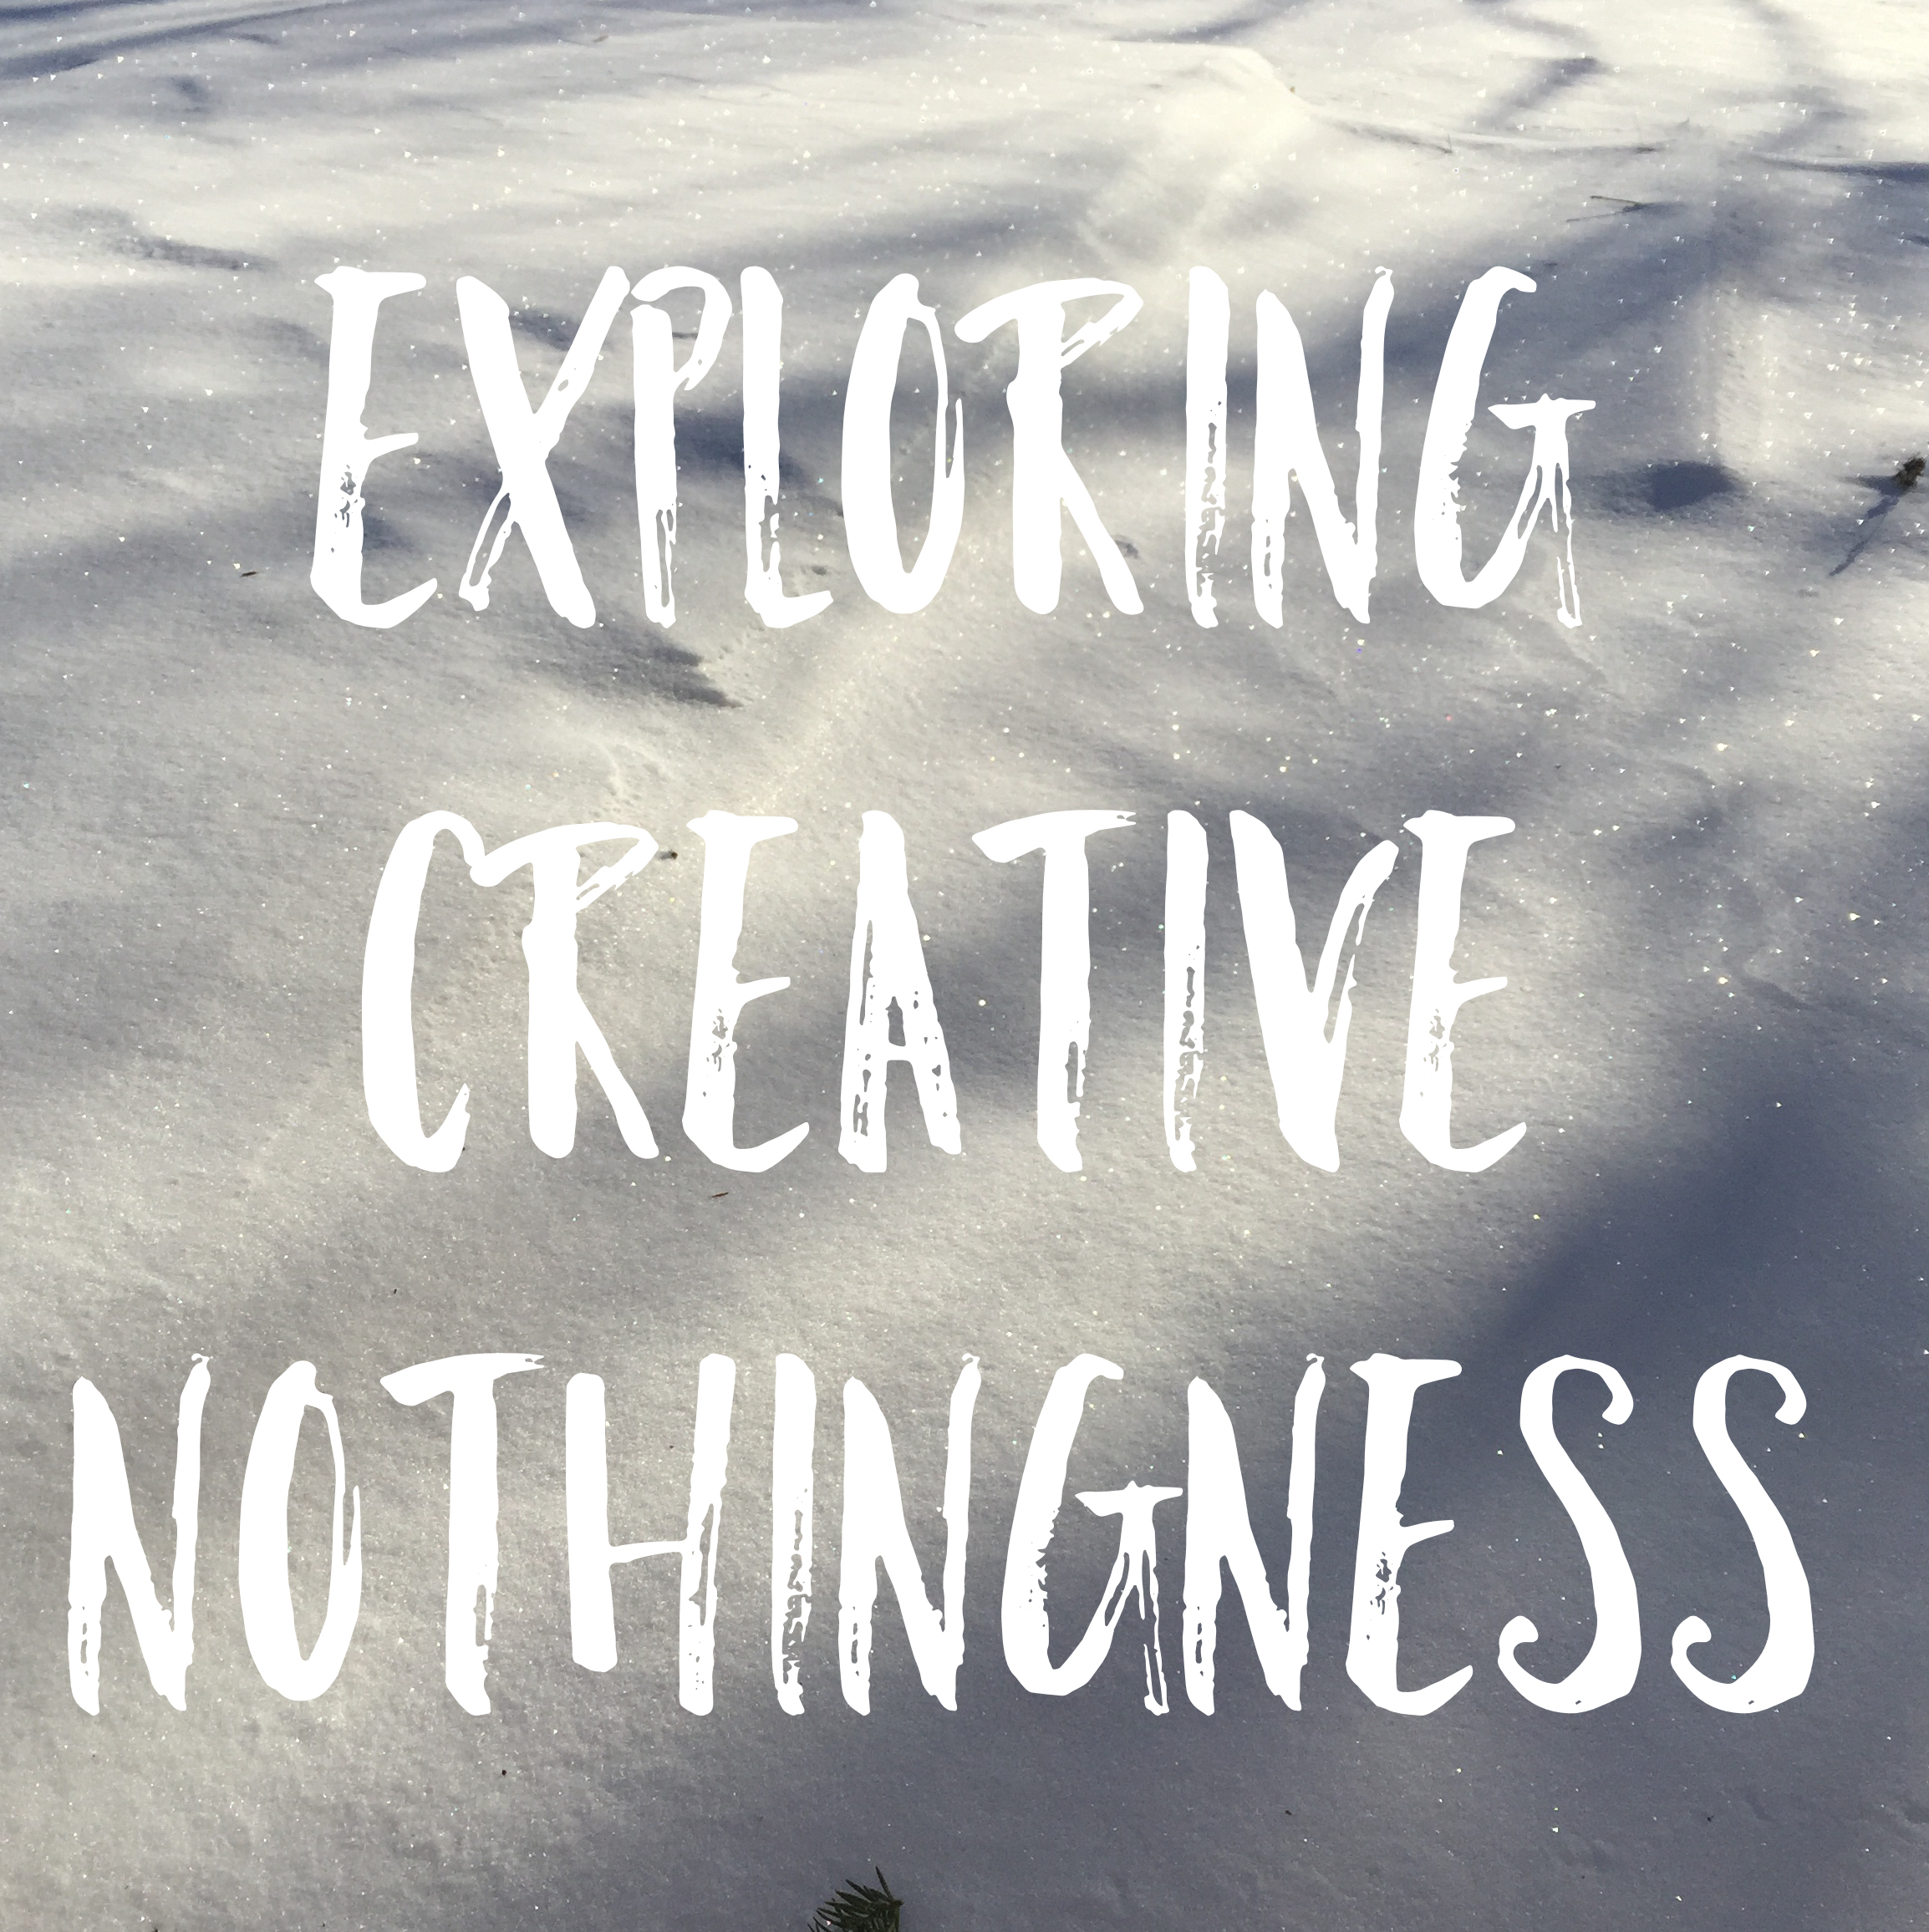 Creative Soul Reflection: Creative Nothingness